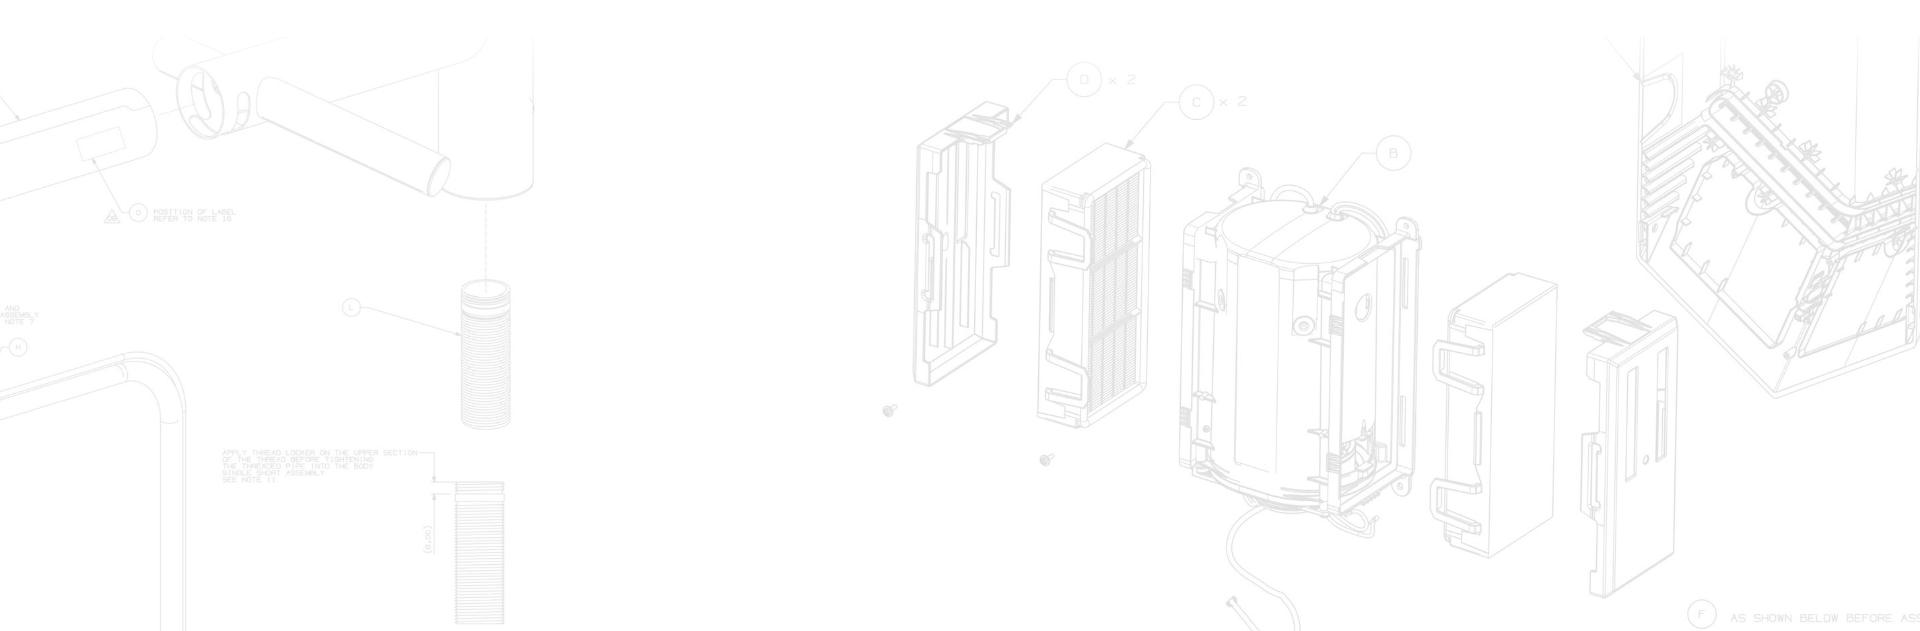 Dyson products blueprint